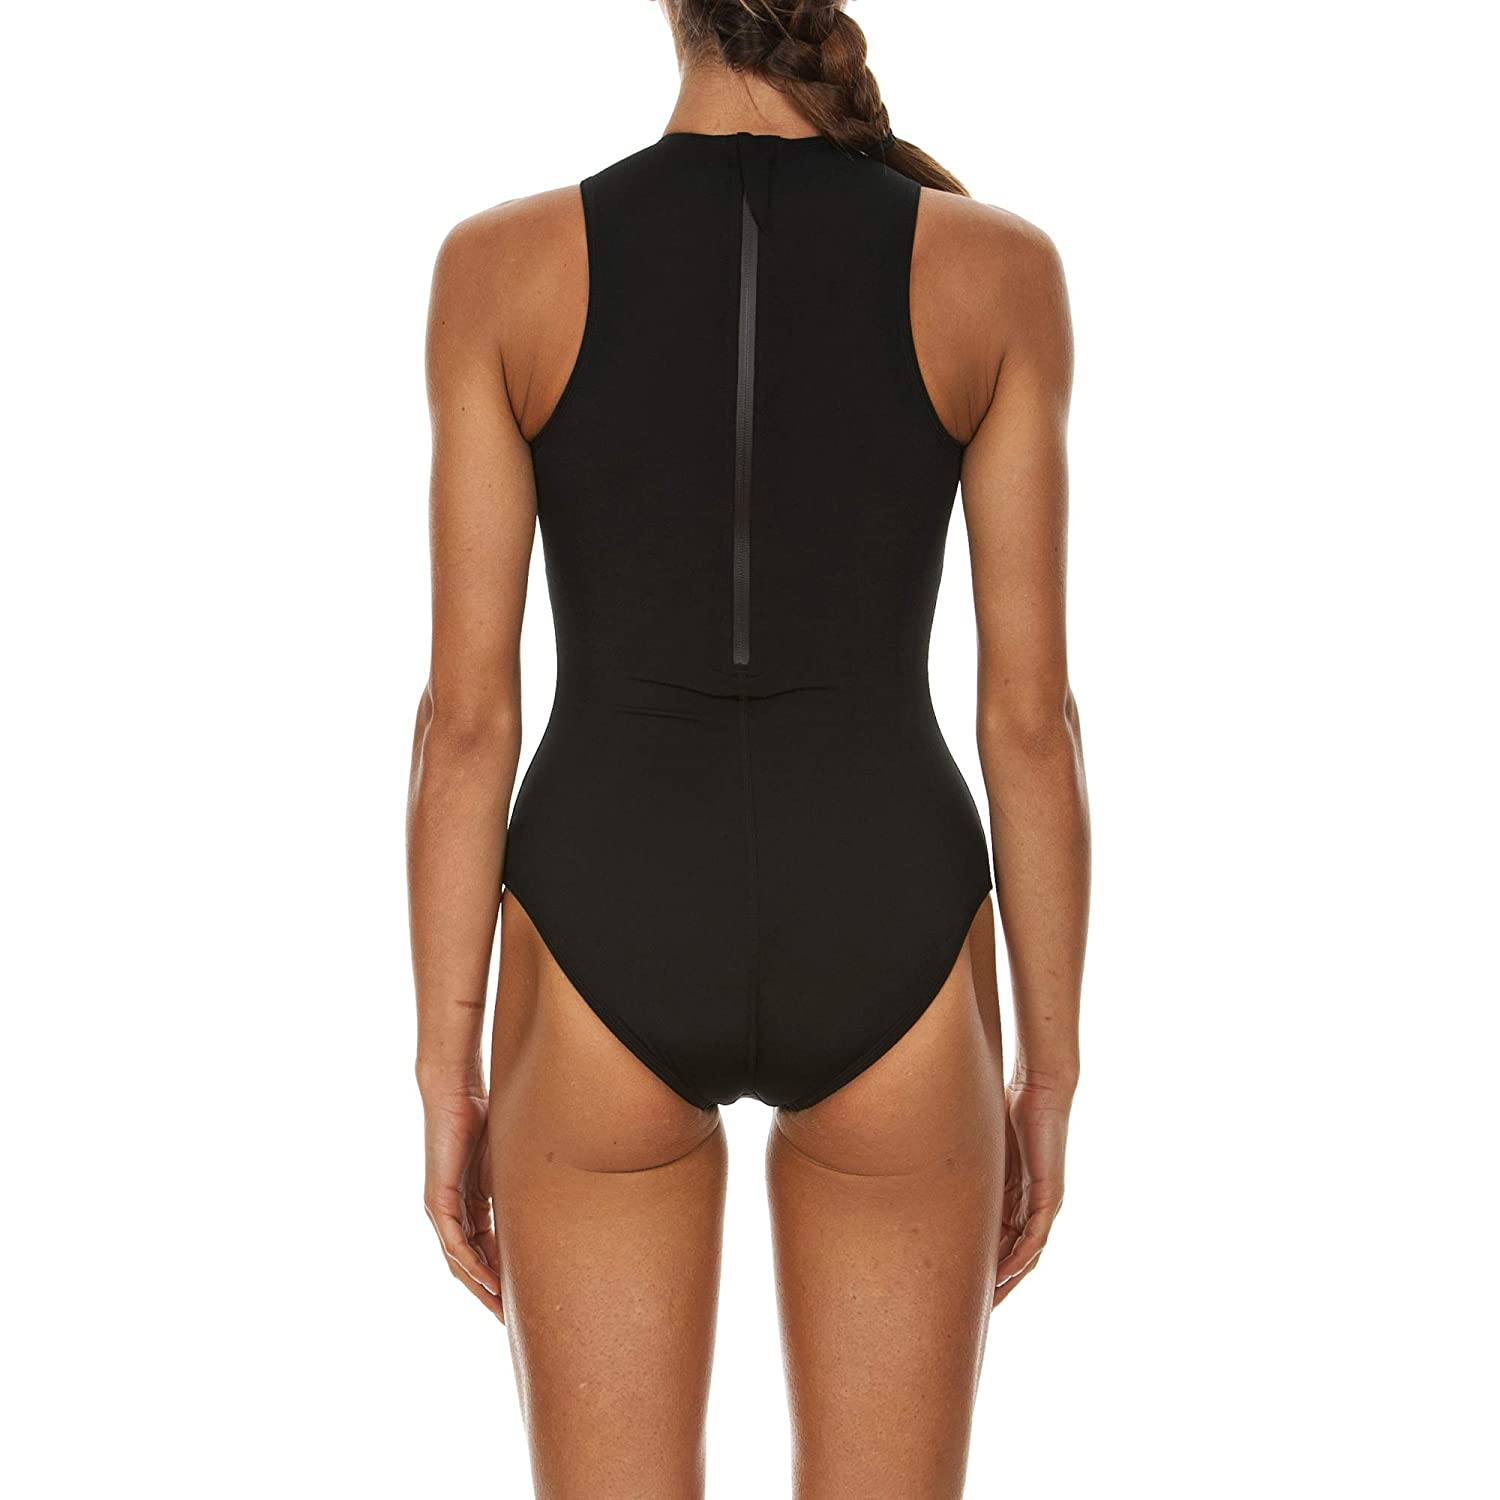 e701740964b81 Amazon.com   arena Waterpolo One Piece - Waternity   Athletic One Piece  Swimsuits   Sports   Outdoors